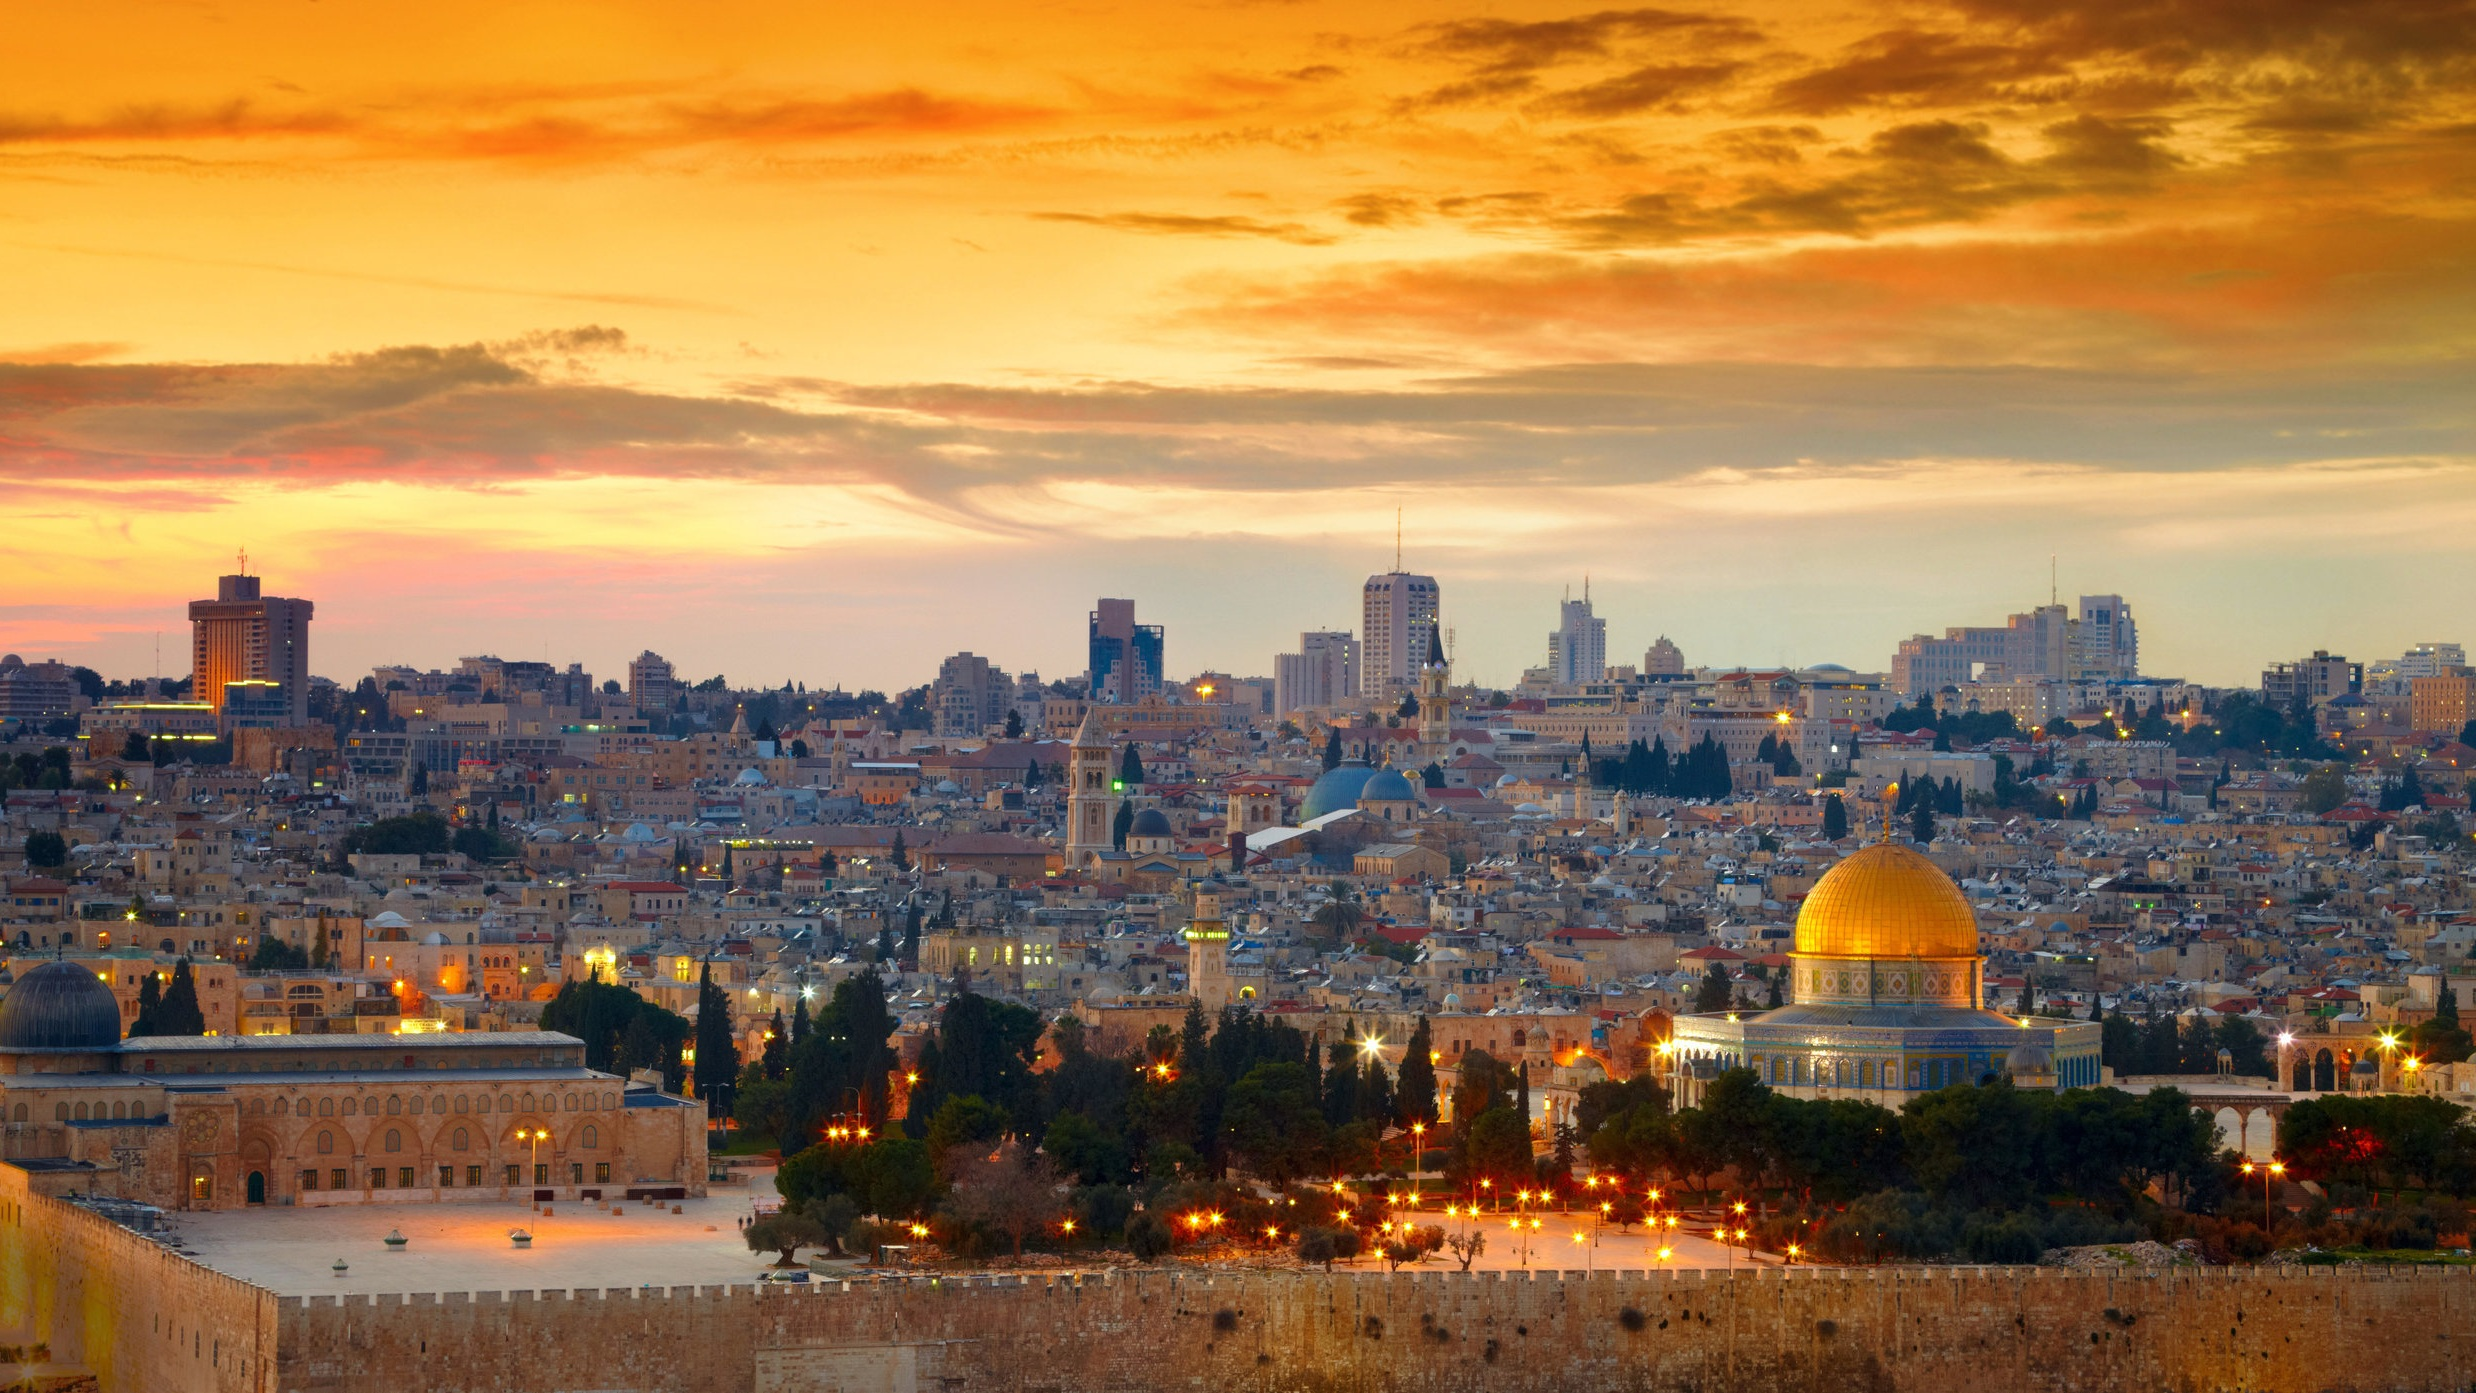 Visit the Most Popular Sites in Israel